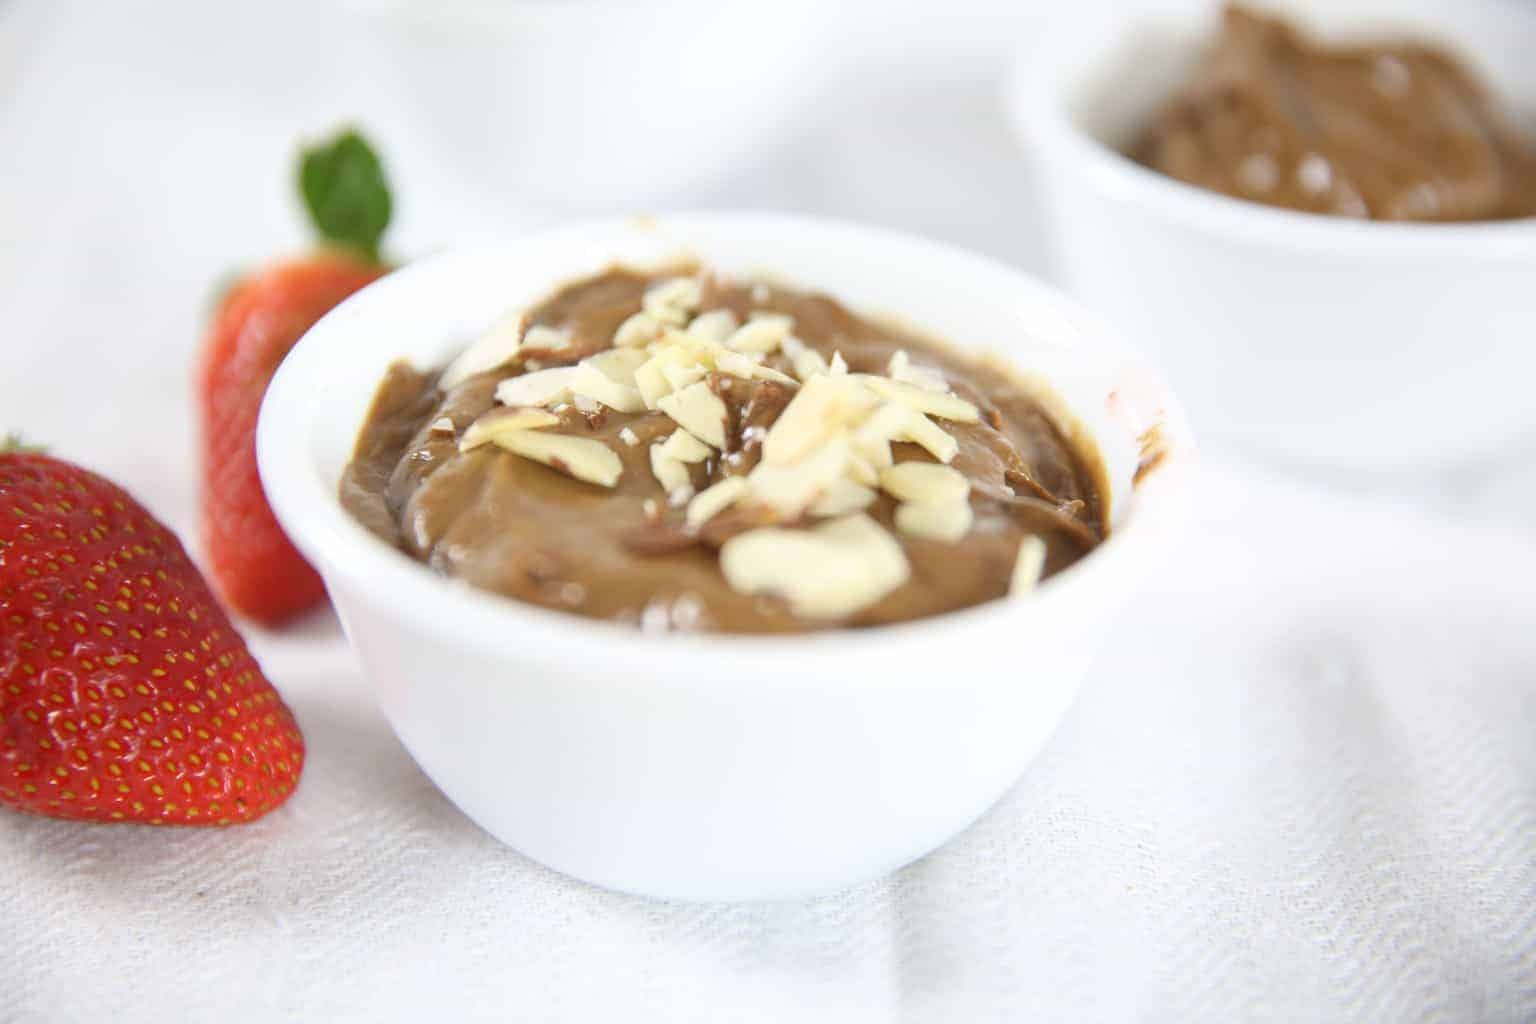 Peanut butter avocado pudding can be topped with almonds, strawberries, shredded coconut for a healthy snack or breakfast.